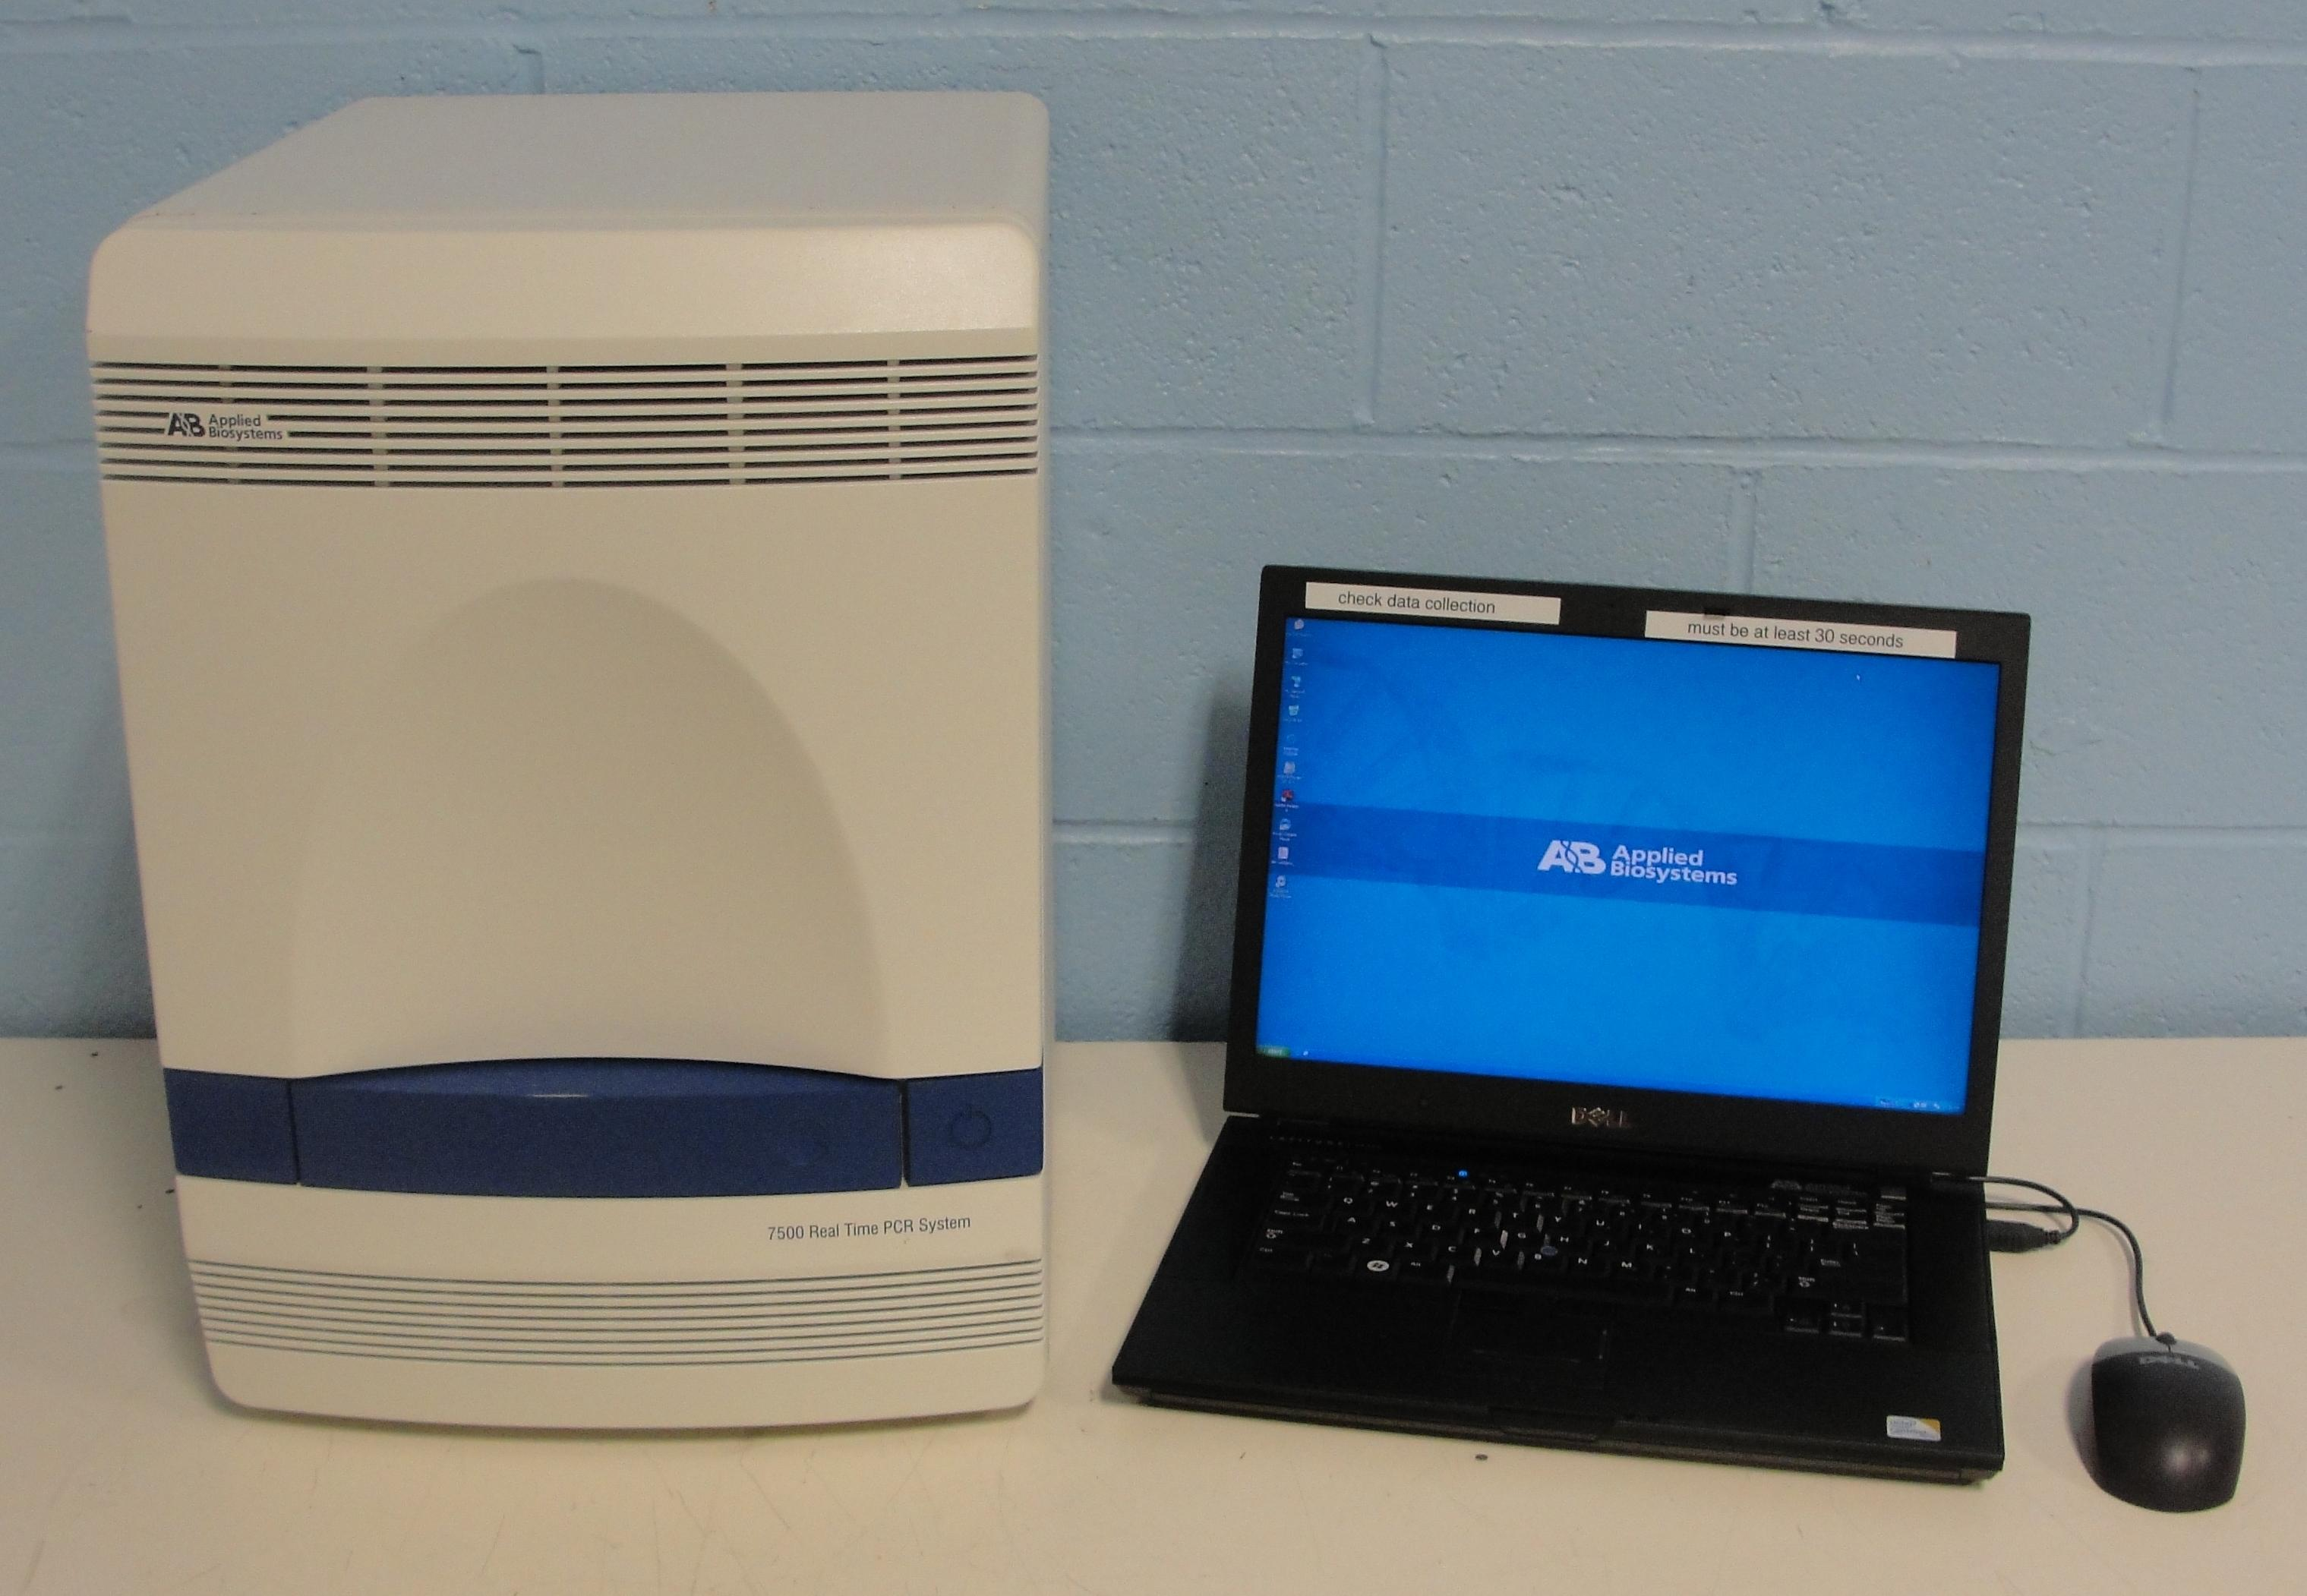 ABI 7500 RealTime PCR Complete System - New Performance Service